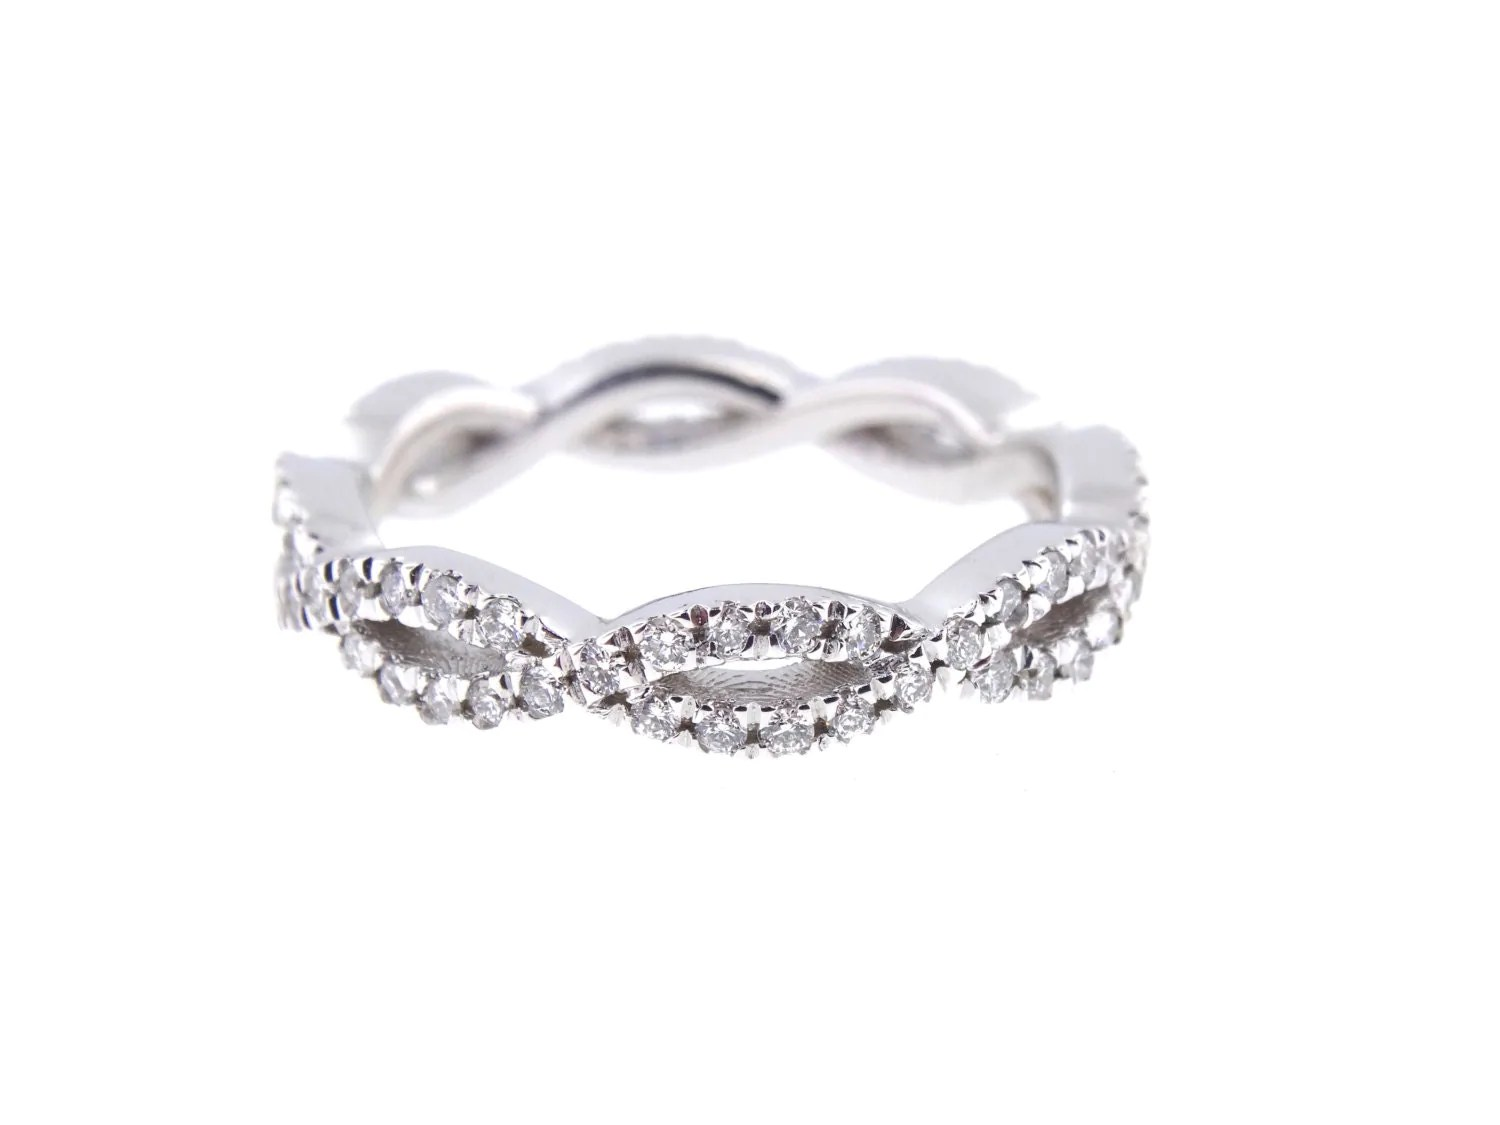 14k white gold diamond infinity eternity infinity diamond wedding band 14K White Gold Diamond Infinity Eternity Band Criss Cross Band Stackable Band Anniversary Band Wedding Band Engagement Yellow Gold Rose Gold